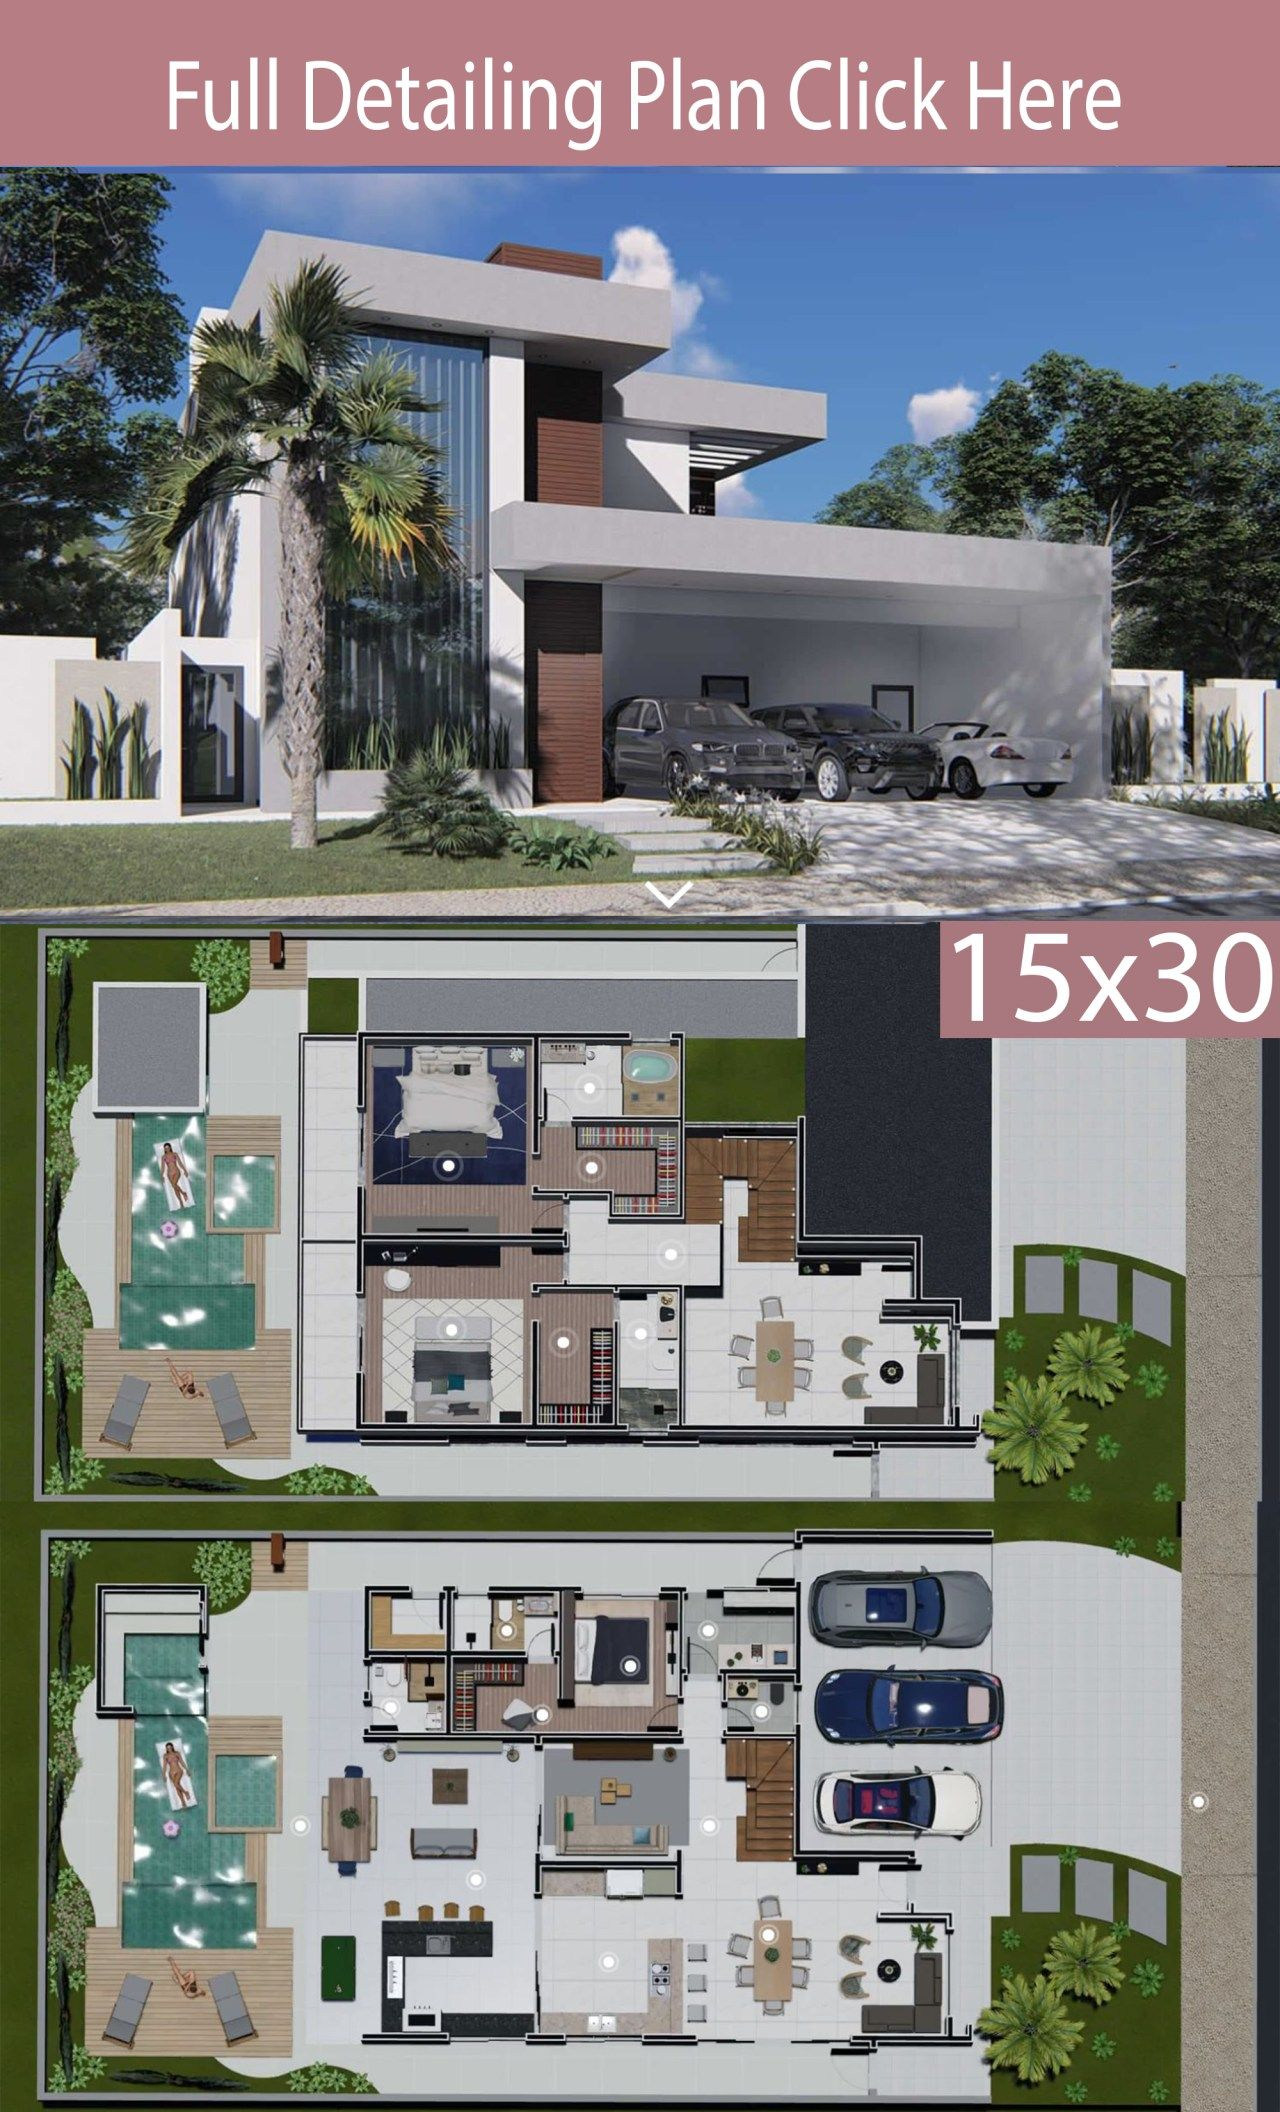 Home Design 15x30 Meters 3 Bedrooms Home Ideas Architectural House Plans Model House Plan Home Building Design